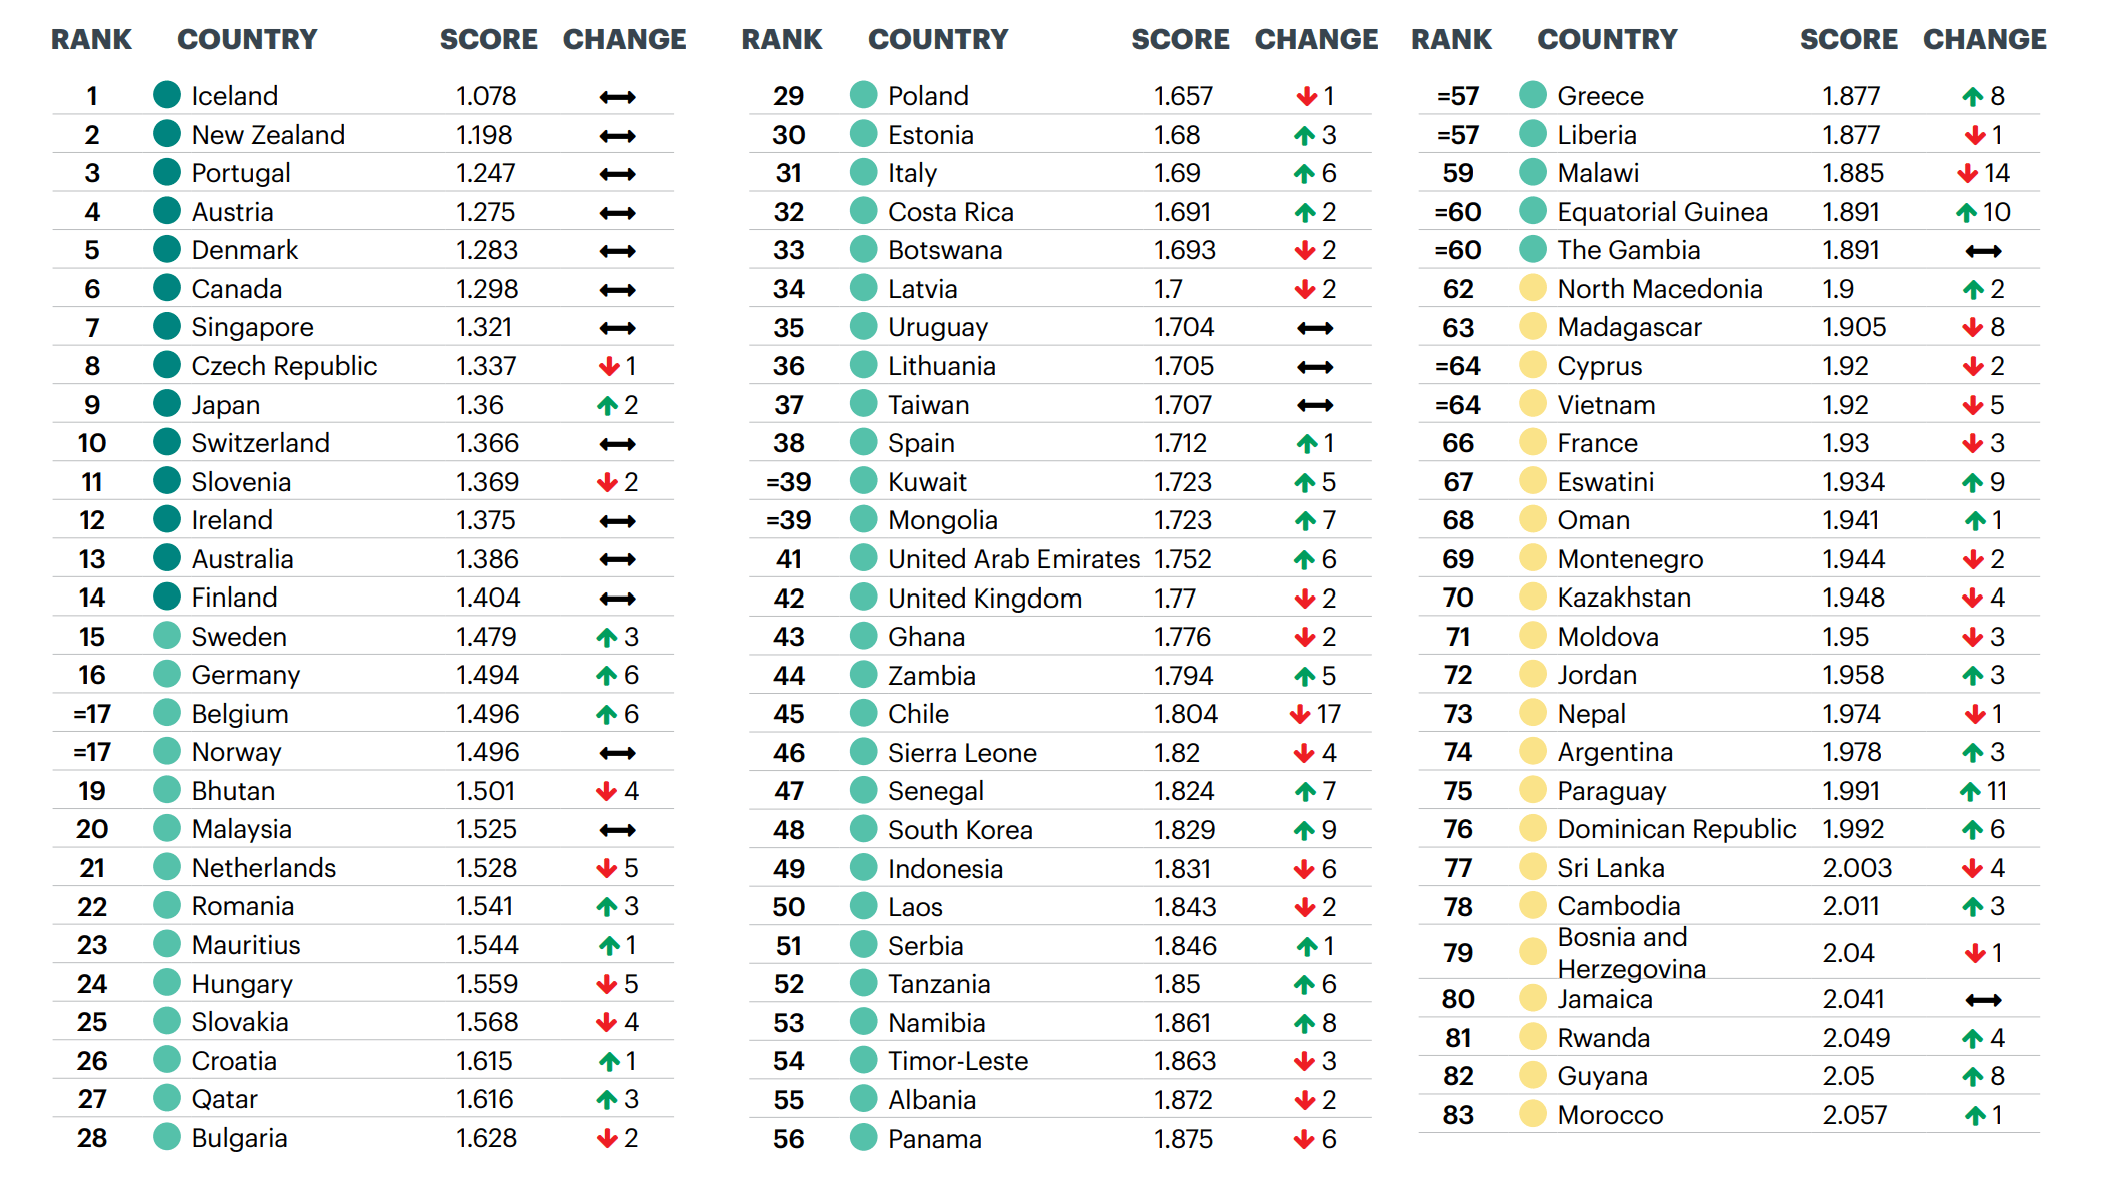 Wereldwijde GPI (Global Peace Index) Scores | 2020